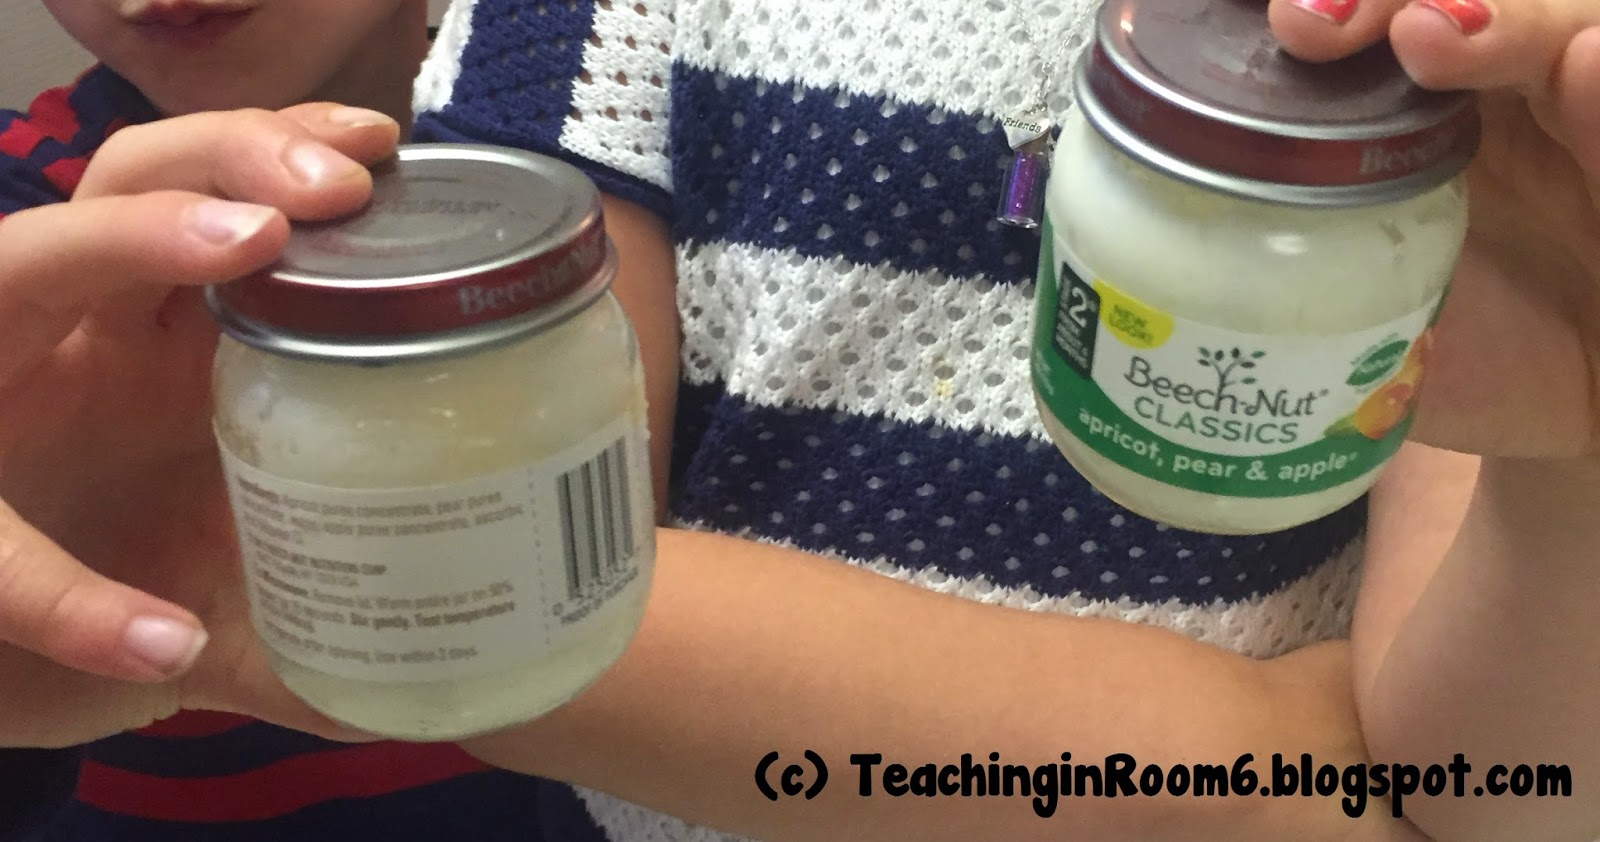 Physical science in a 5th grade class by making butter!